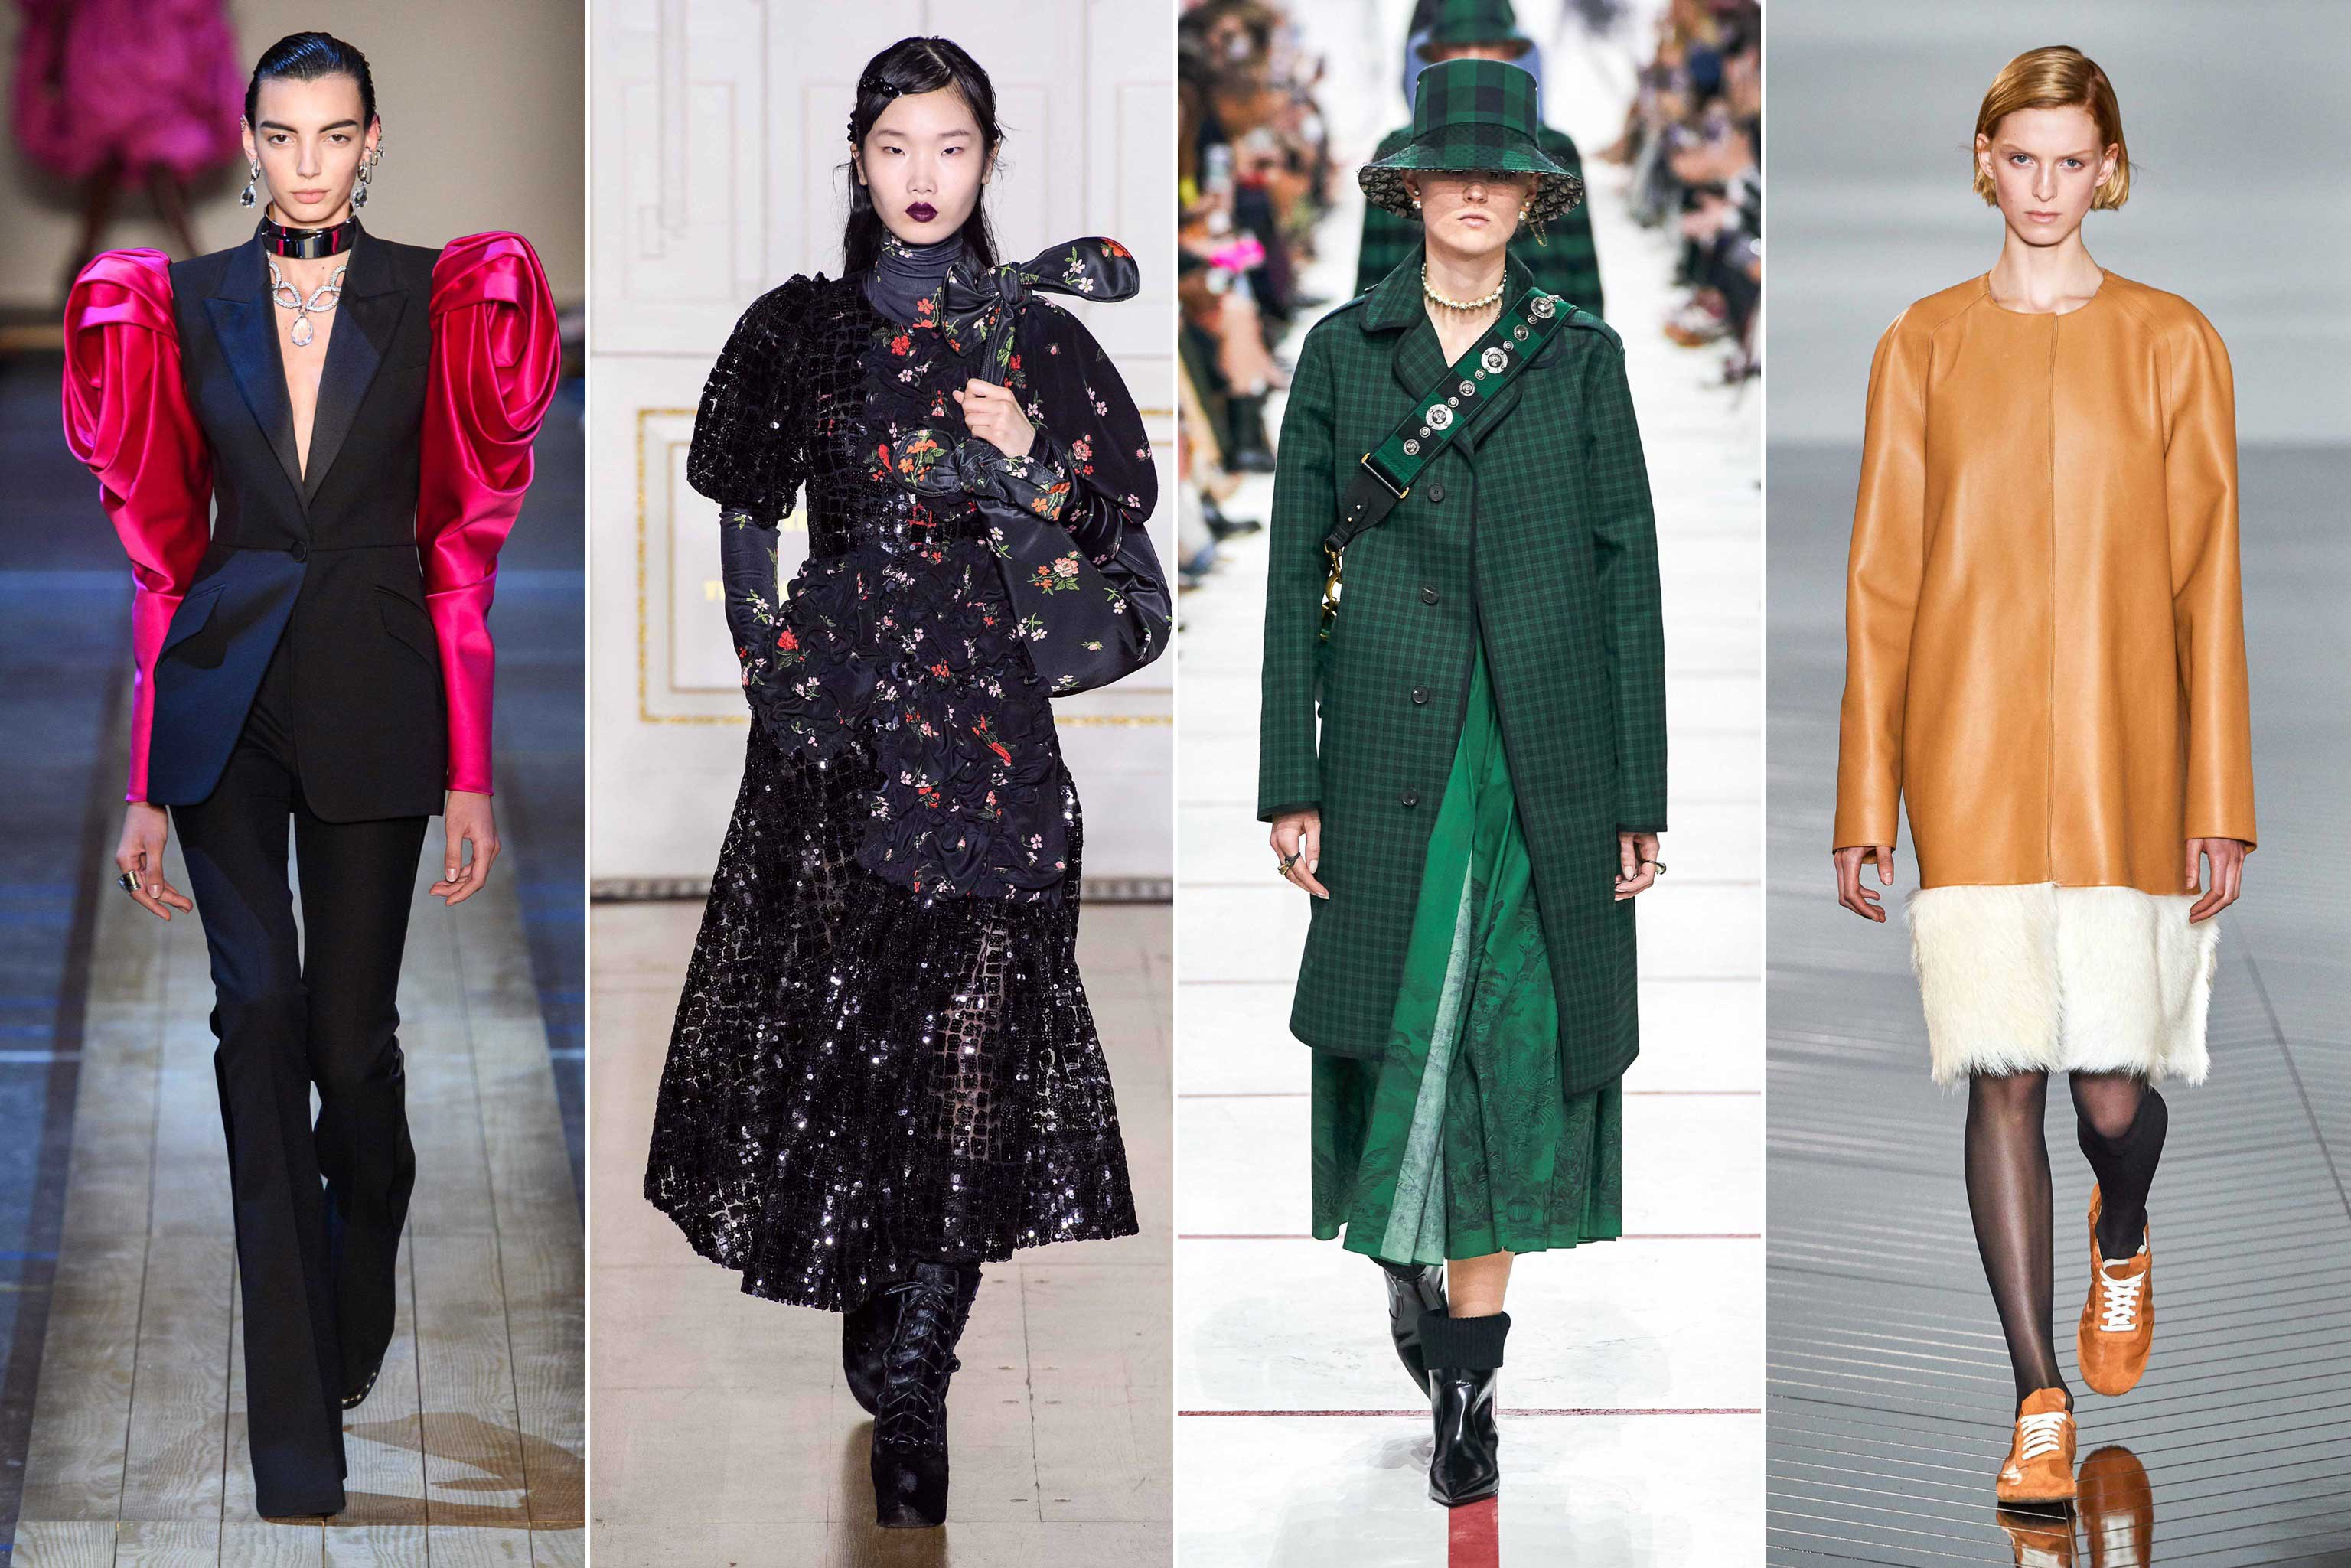 8f40d30ac0 2019 Fall Winter Fashion Trends fall / 2019 fashion week report. Discover  the biggest fall